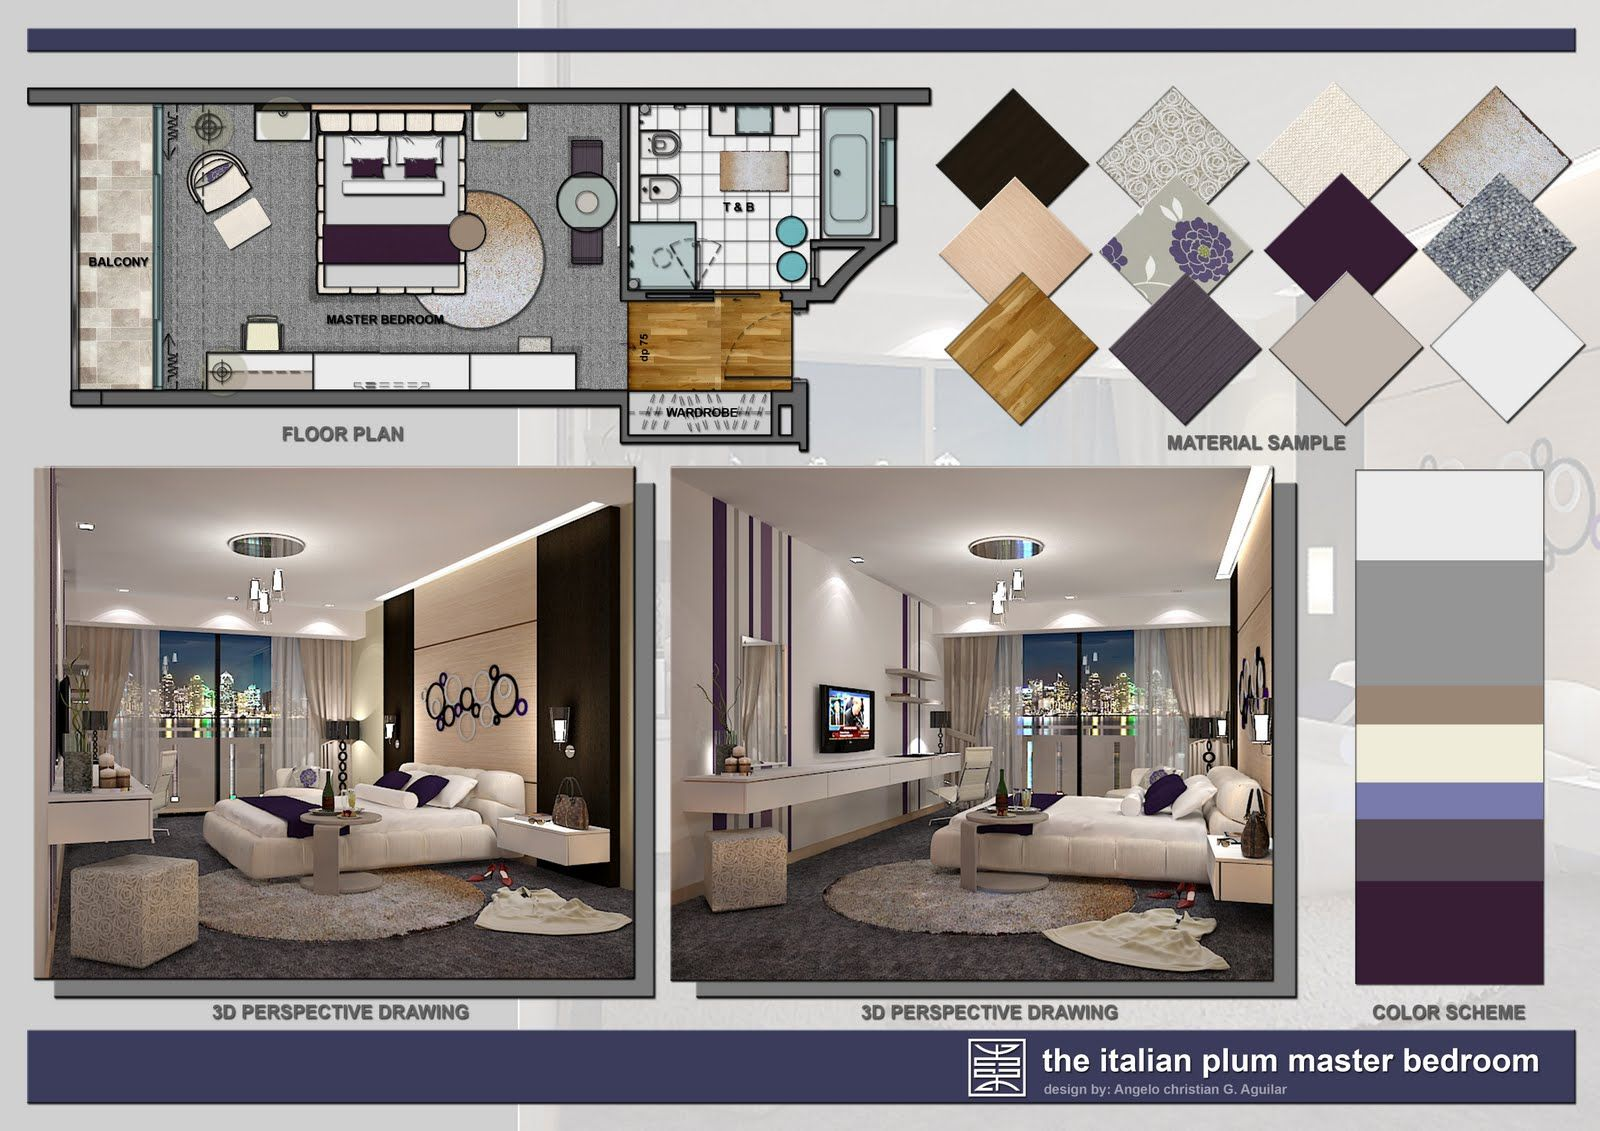 Ordinary design my room online part 2 interior design for Design my room online